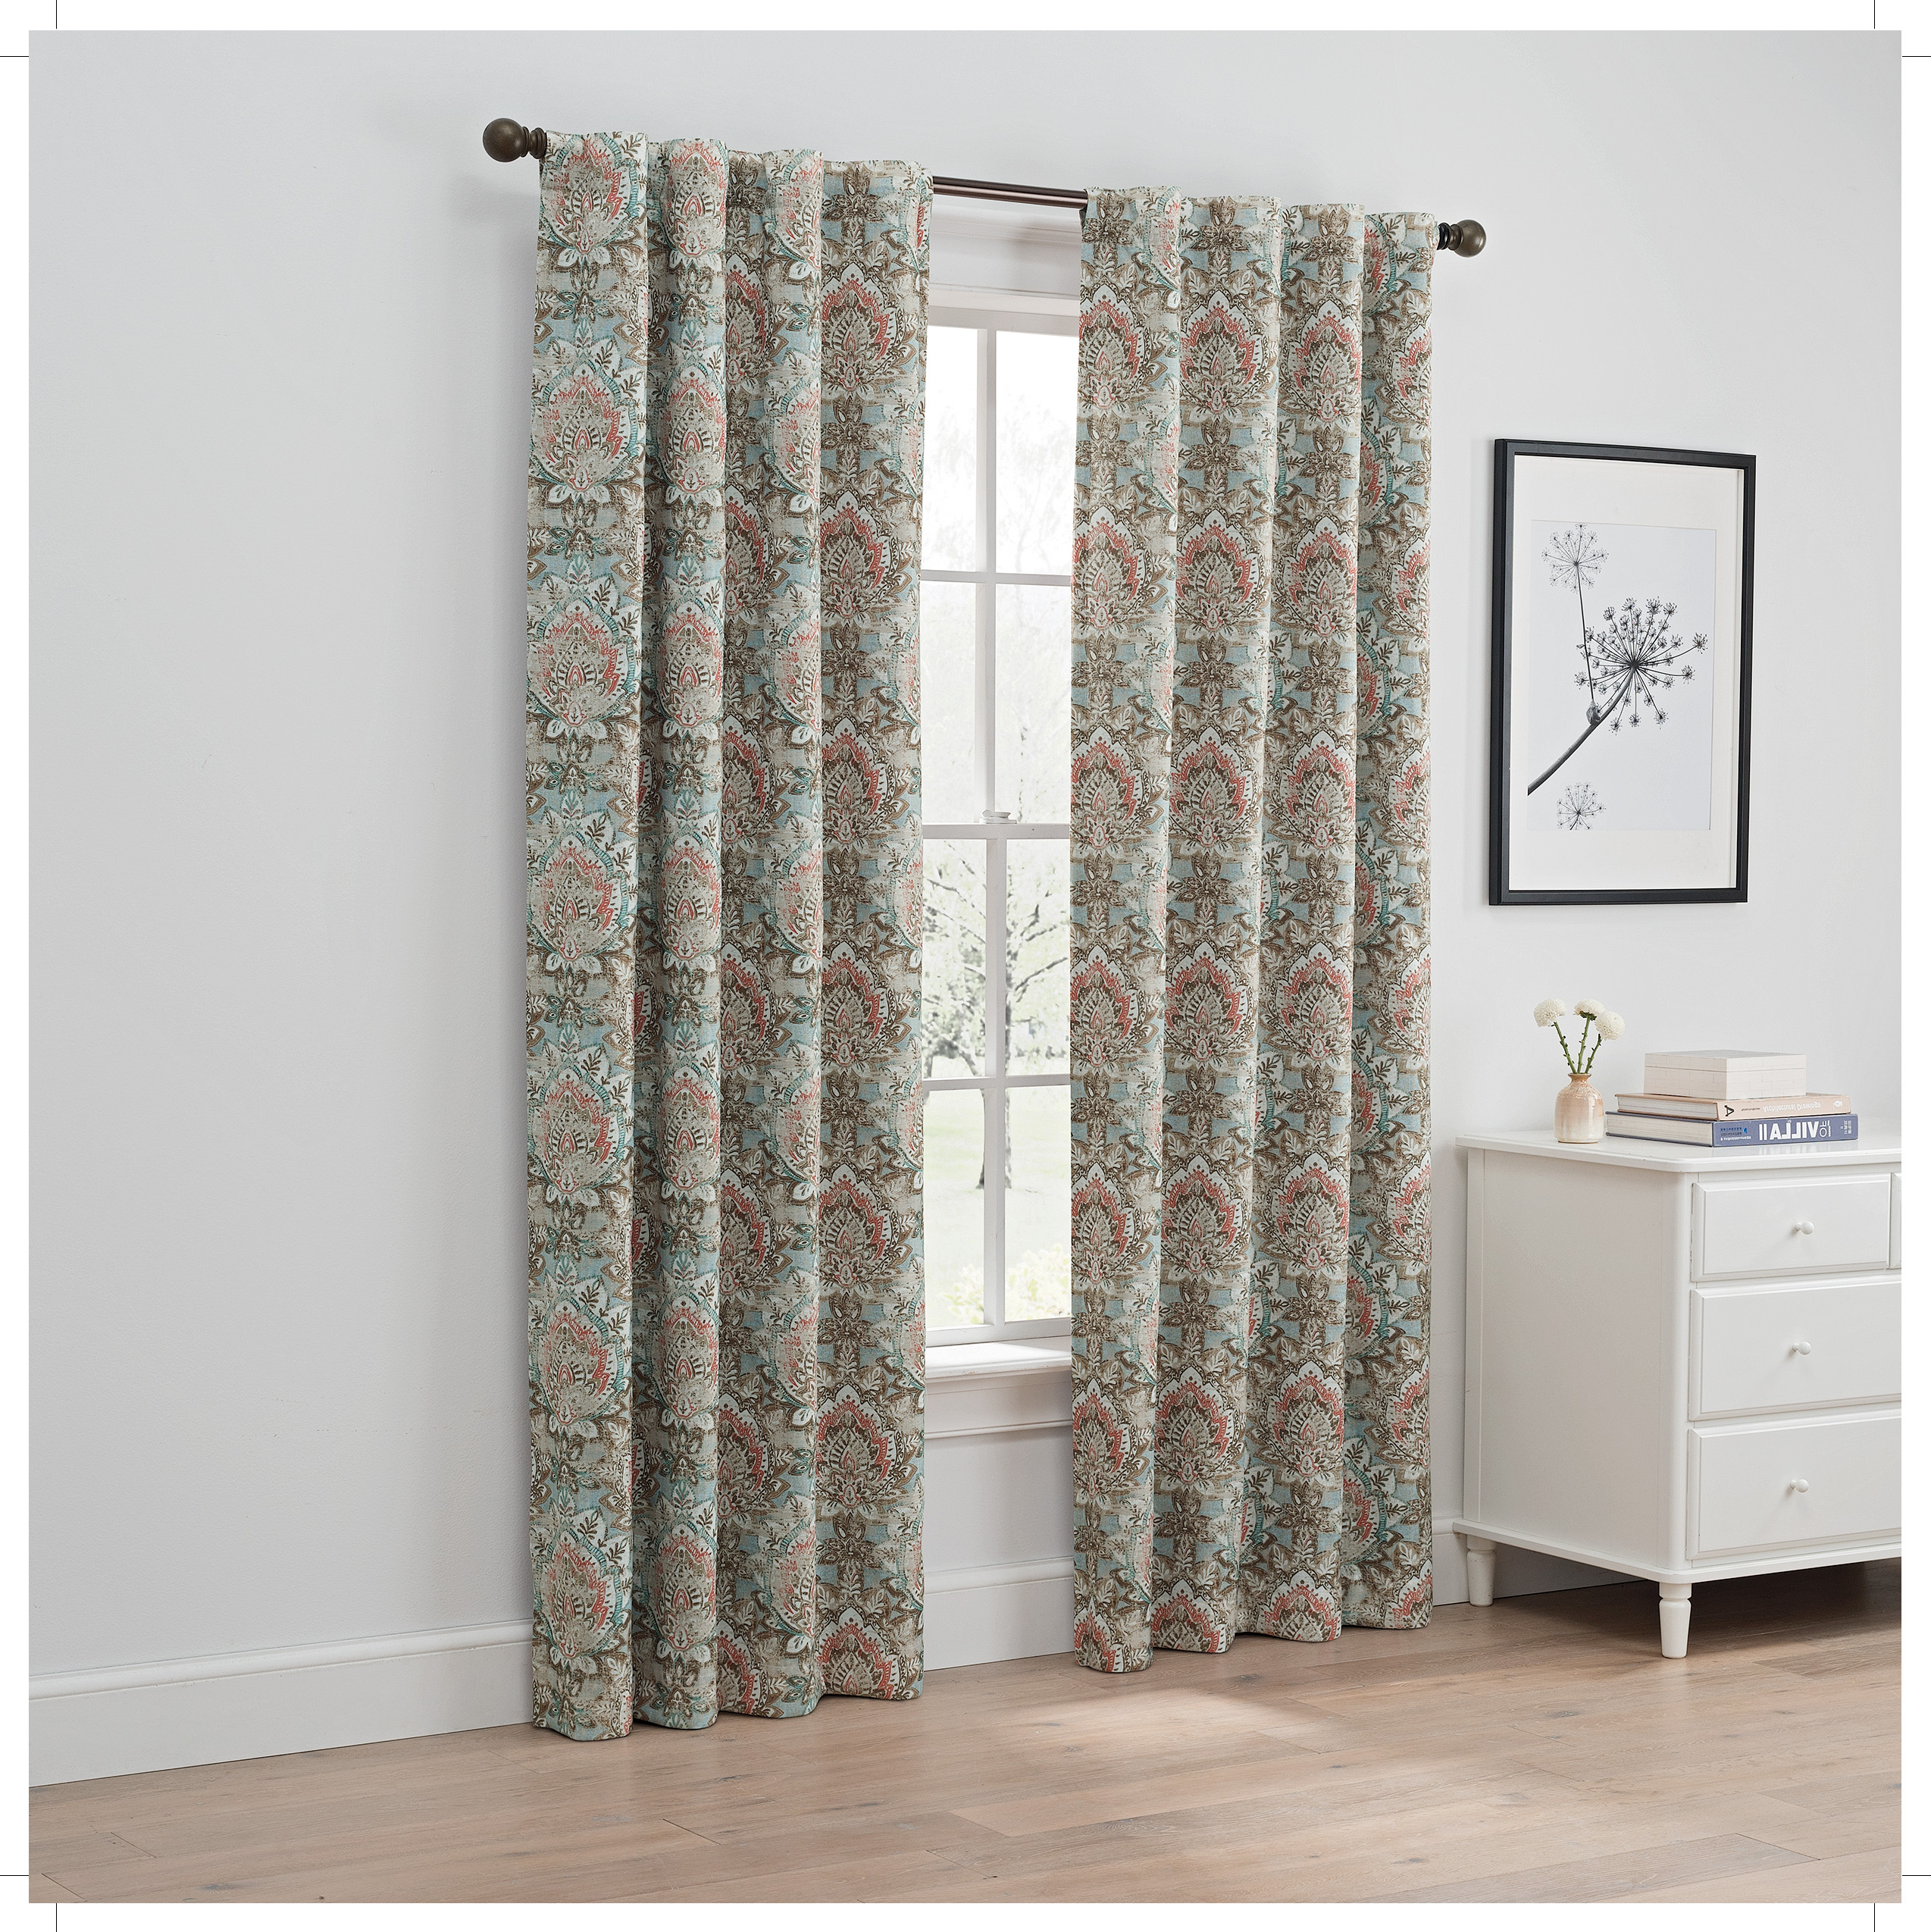 Widely Used Davis Patio Grommet Top Single Curtain Panels Inside Eclipse Ames Thermalayer Blackout Window Curtain Panel (View 20 of 20)